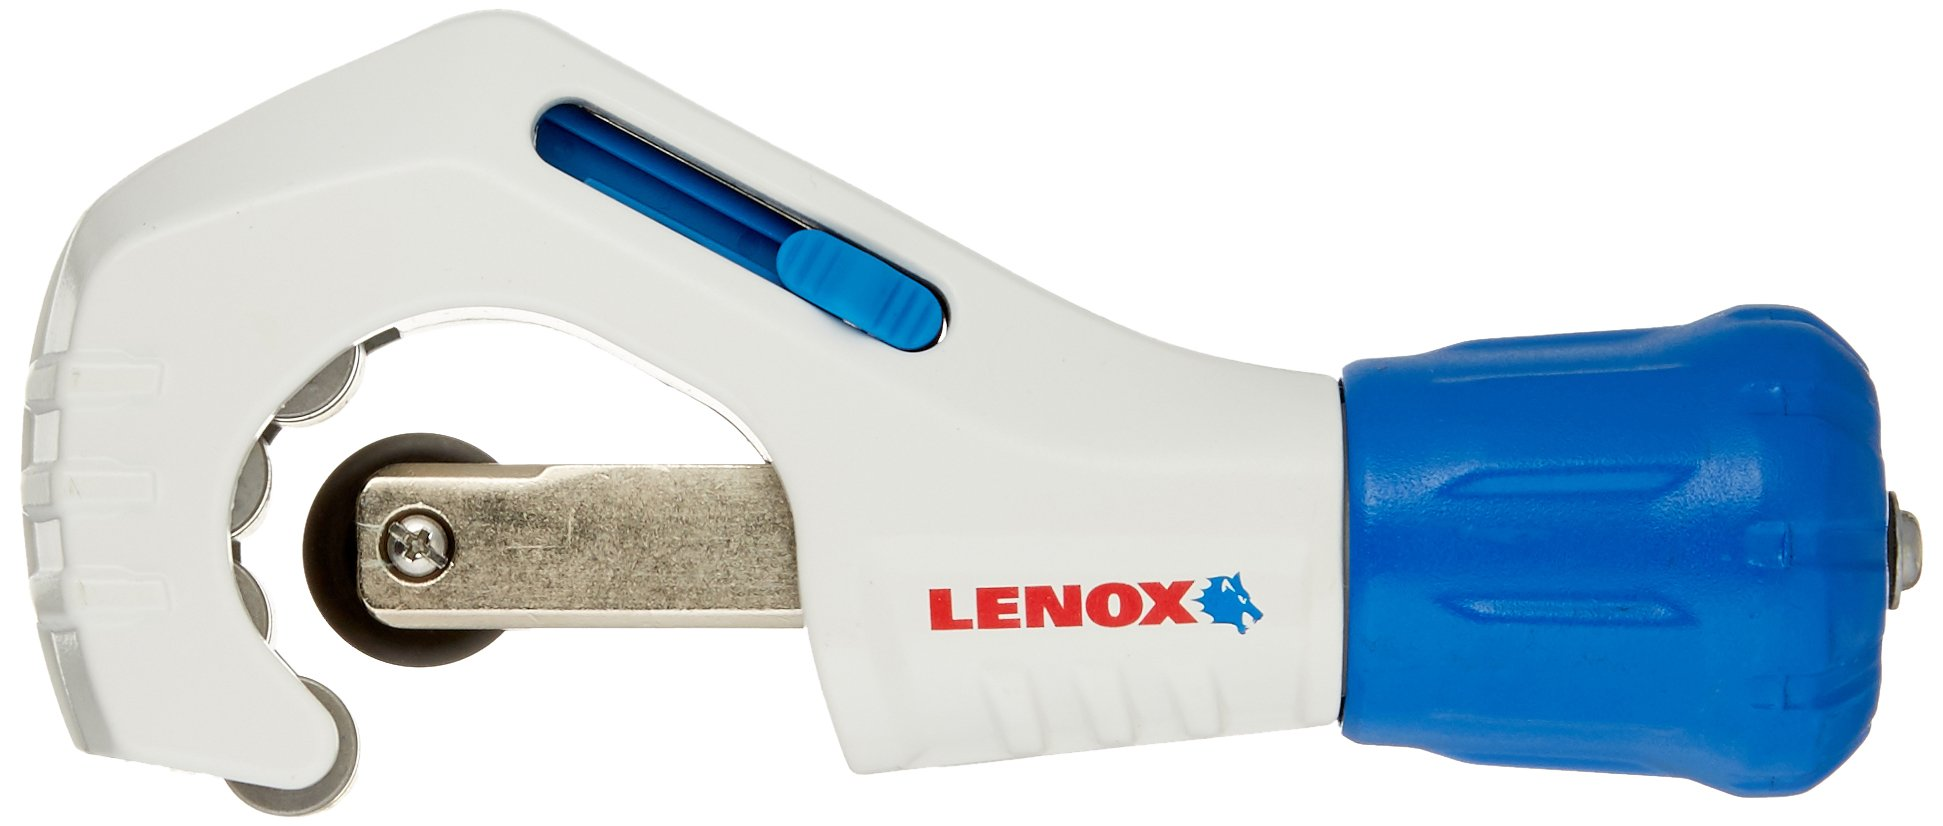 LENOX 21011TC138 Tubing Cutters - 1/8-Inch to 1-3/8-Inch